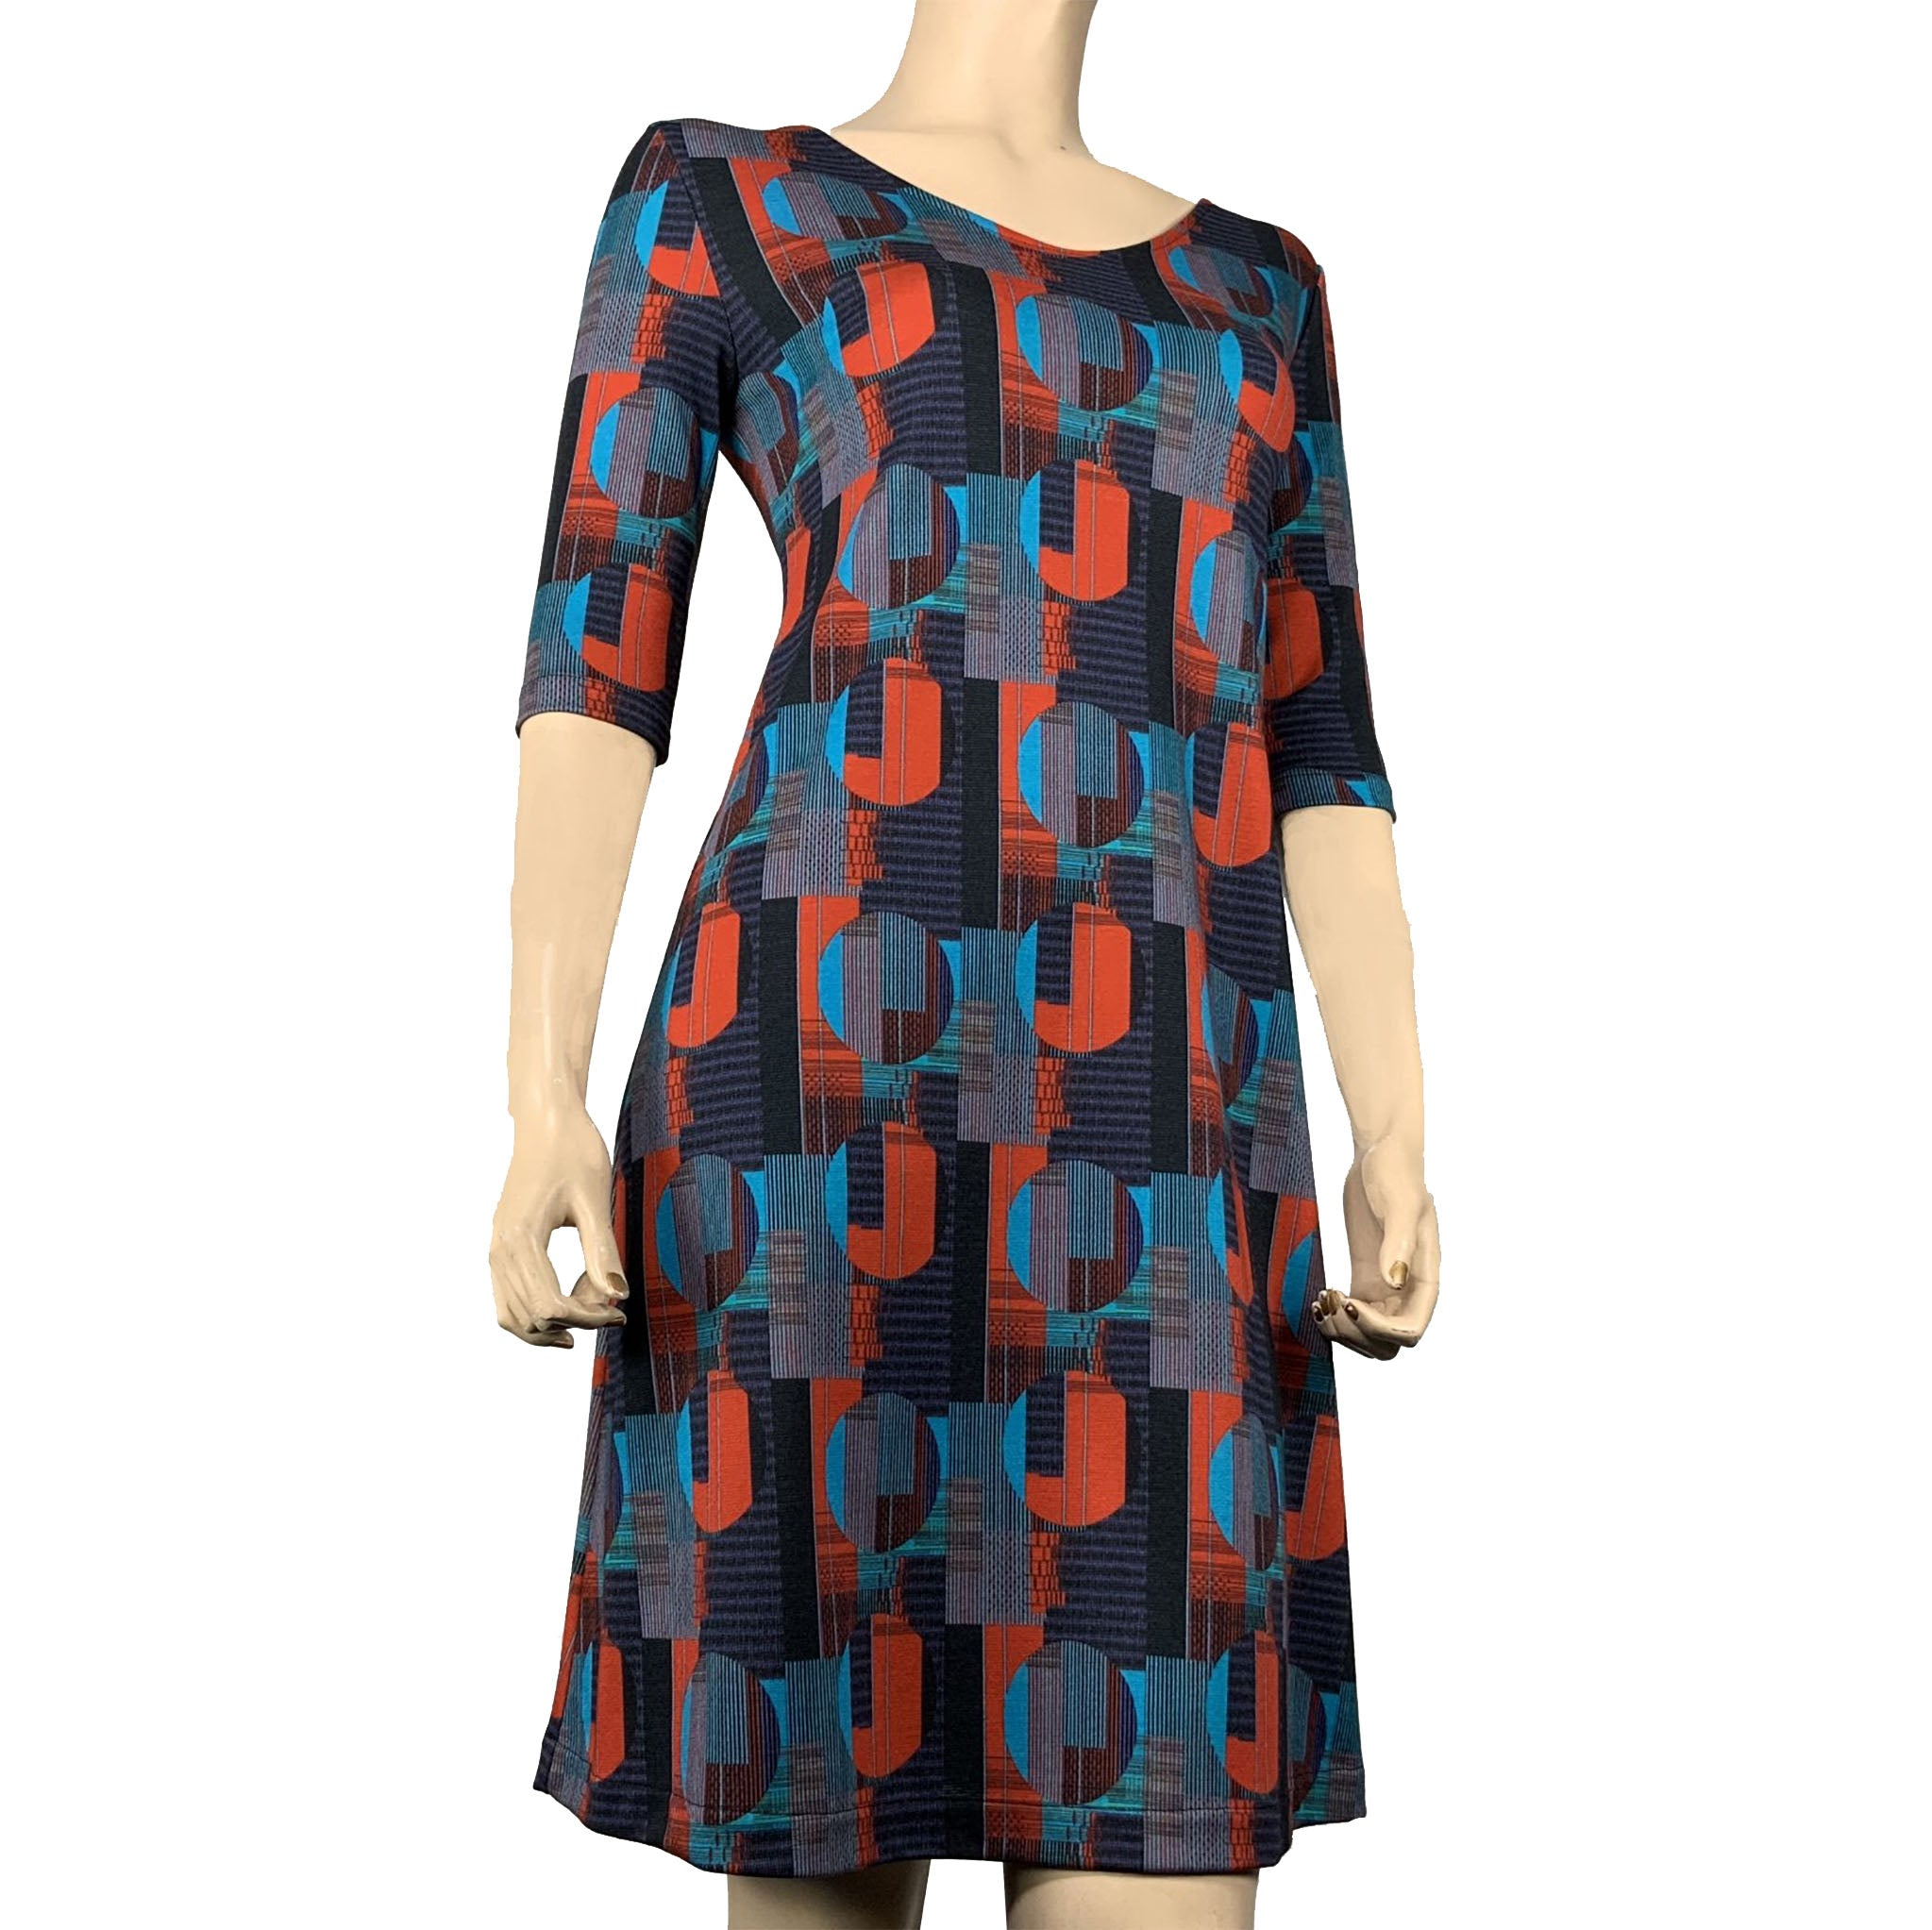 Tokyo Alice Relaxed-Fit Dress